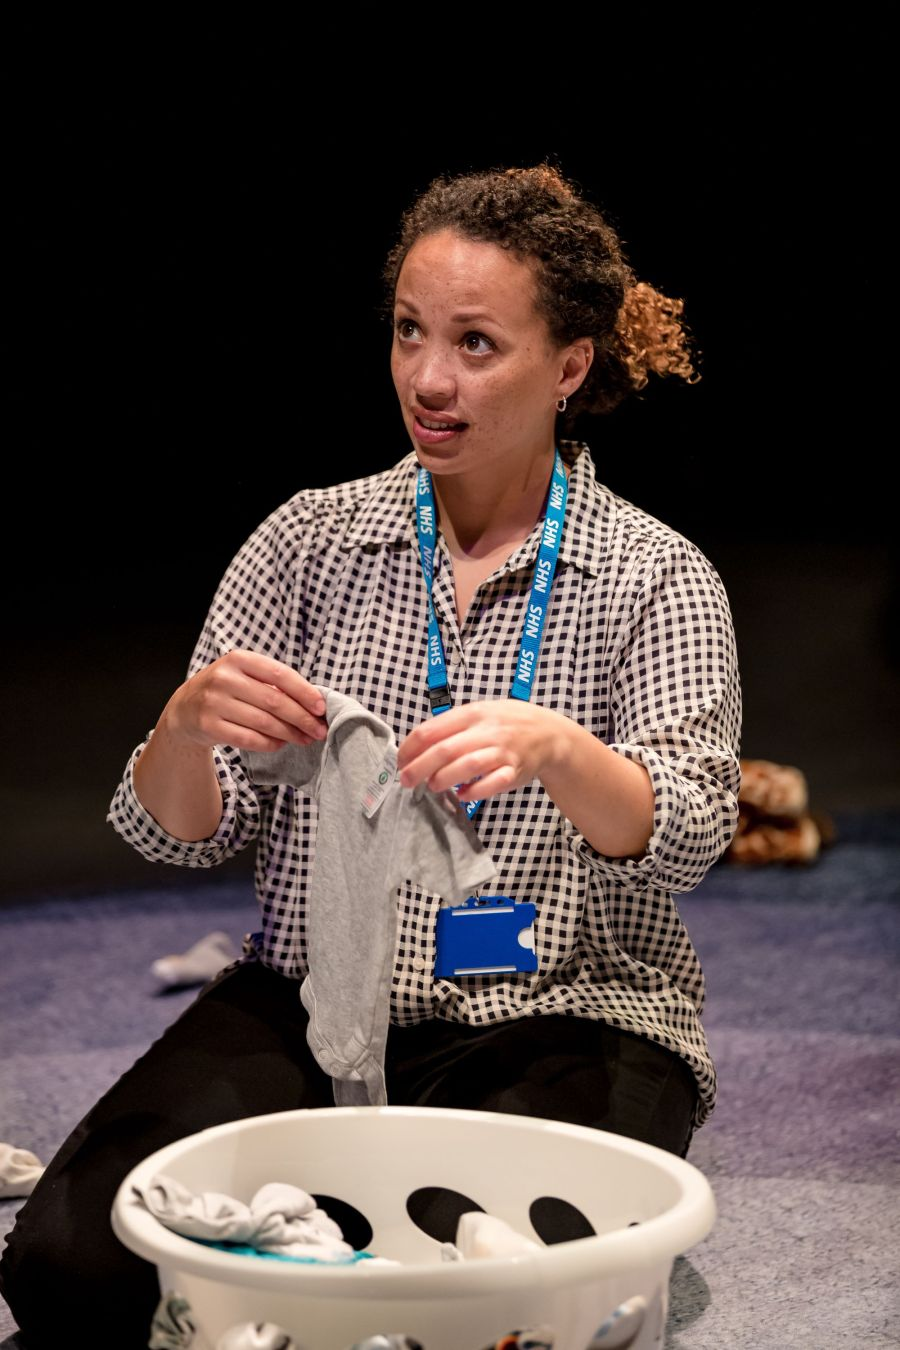 Cat Simmons (Jackie) in Mum by Morgan Lloyd Malcolm. Photo by The Other Richard.